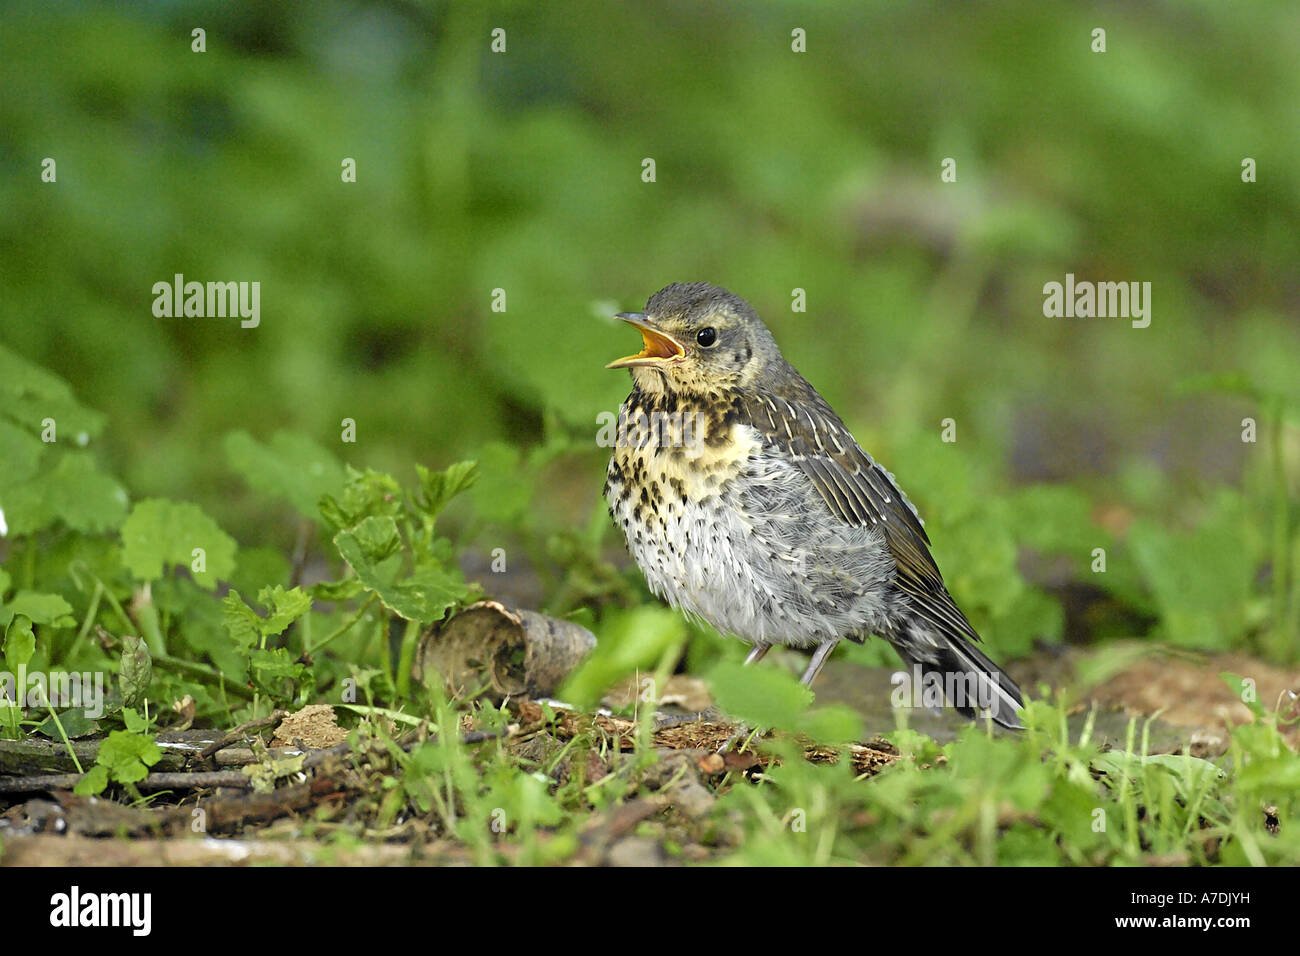 Wacholderdrossel Turdus pilaris Fieldfare Krummetvogel Stock Photo